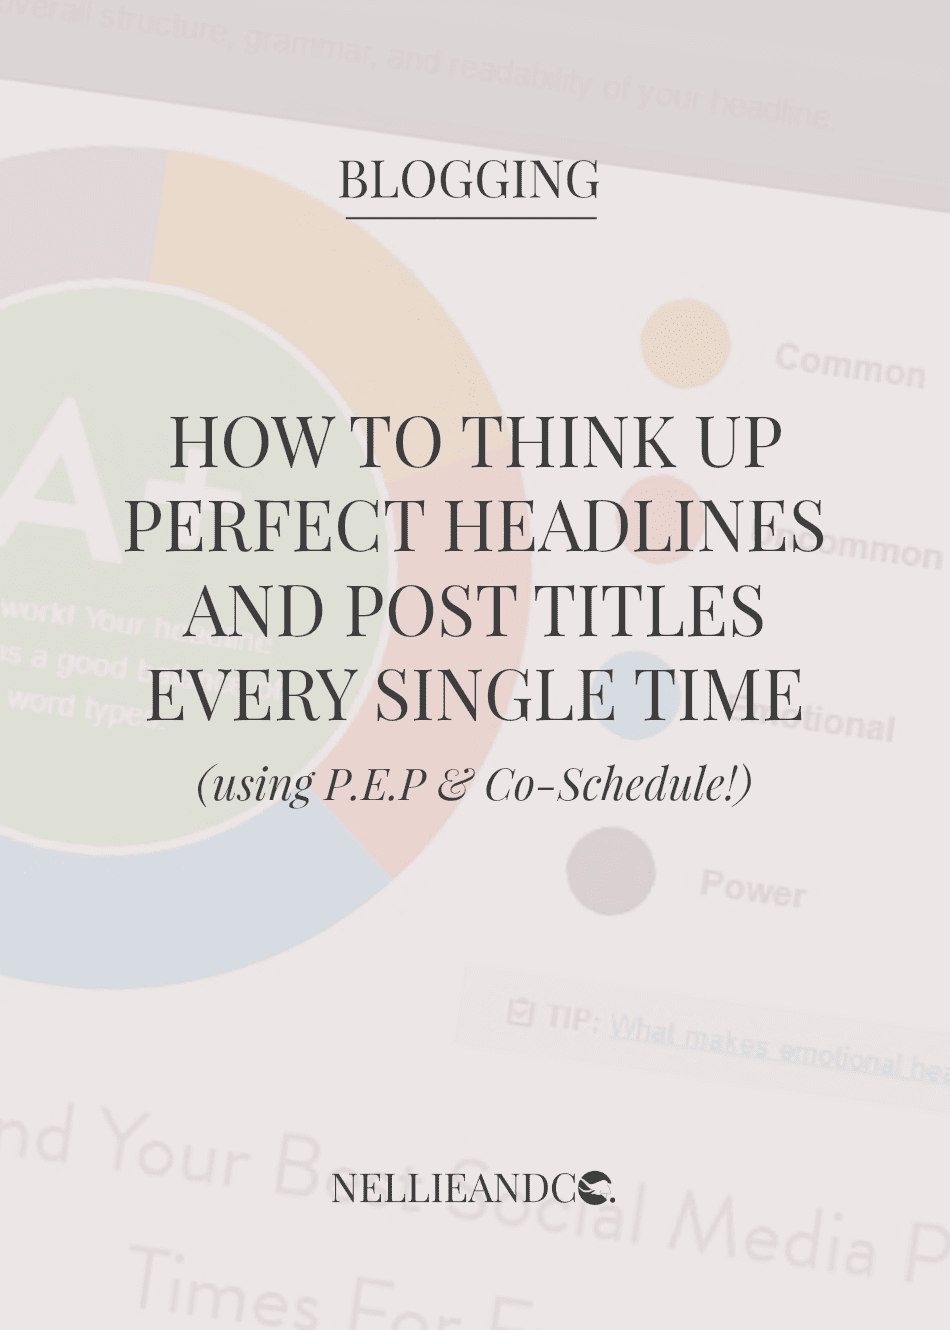 How To Think Up Perfect Headlines Every Time - Stop getting brain freeze when it comes to your post titles and headlines! Use these easy steps and ensure you'll have the best title for your content, every single time..